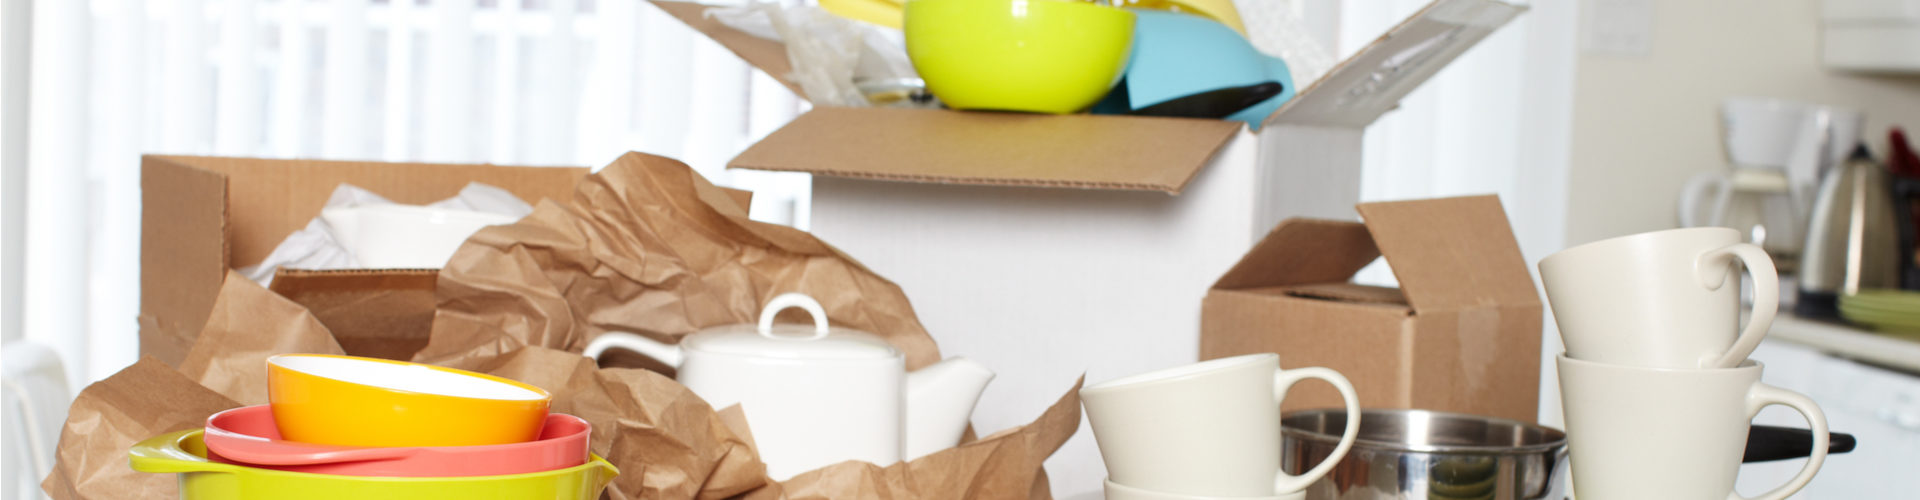 How to pack dishes - dish packs boxes